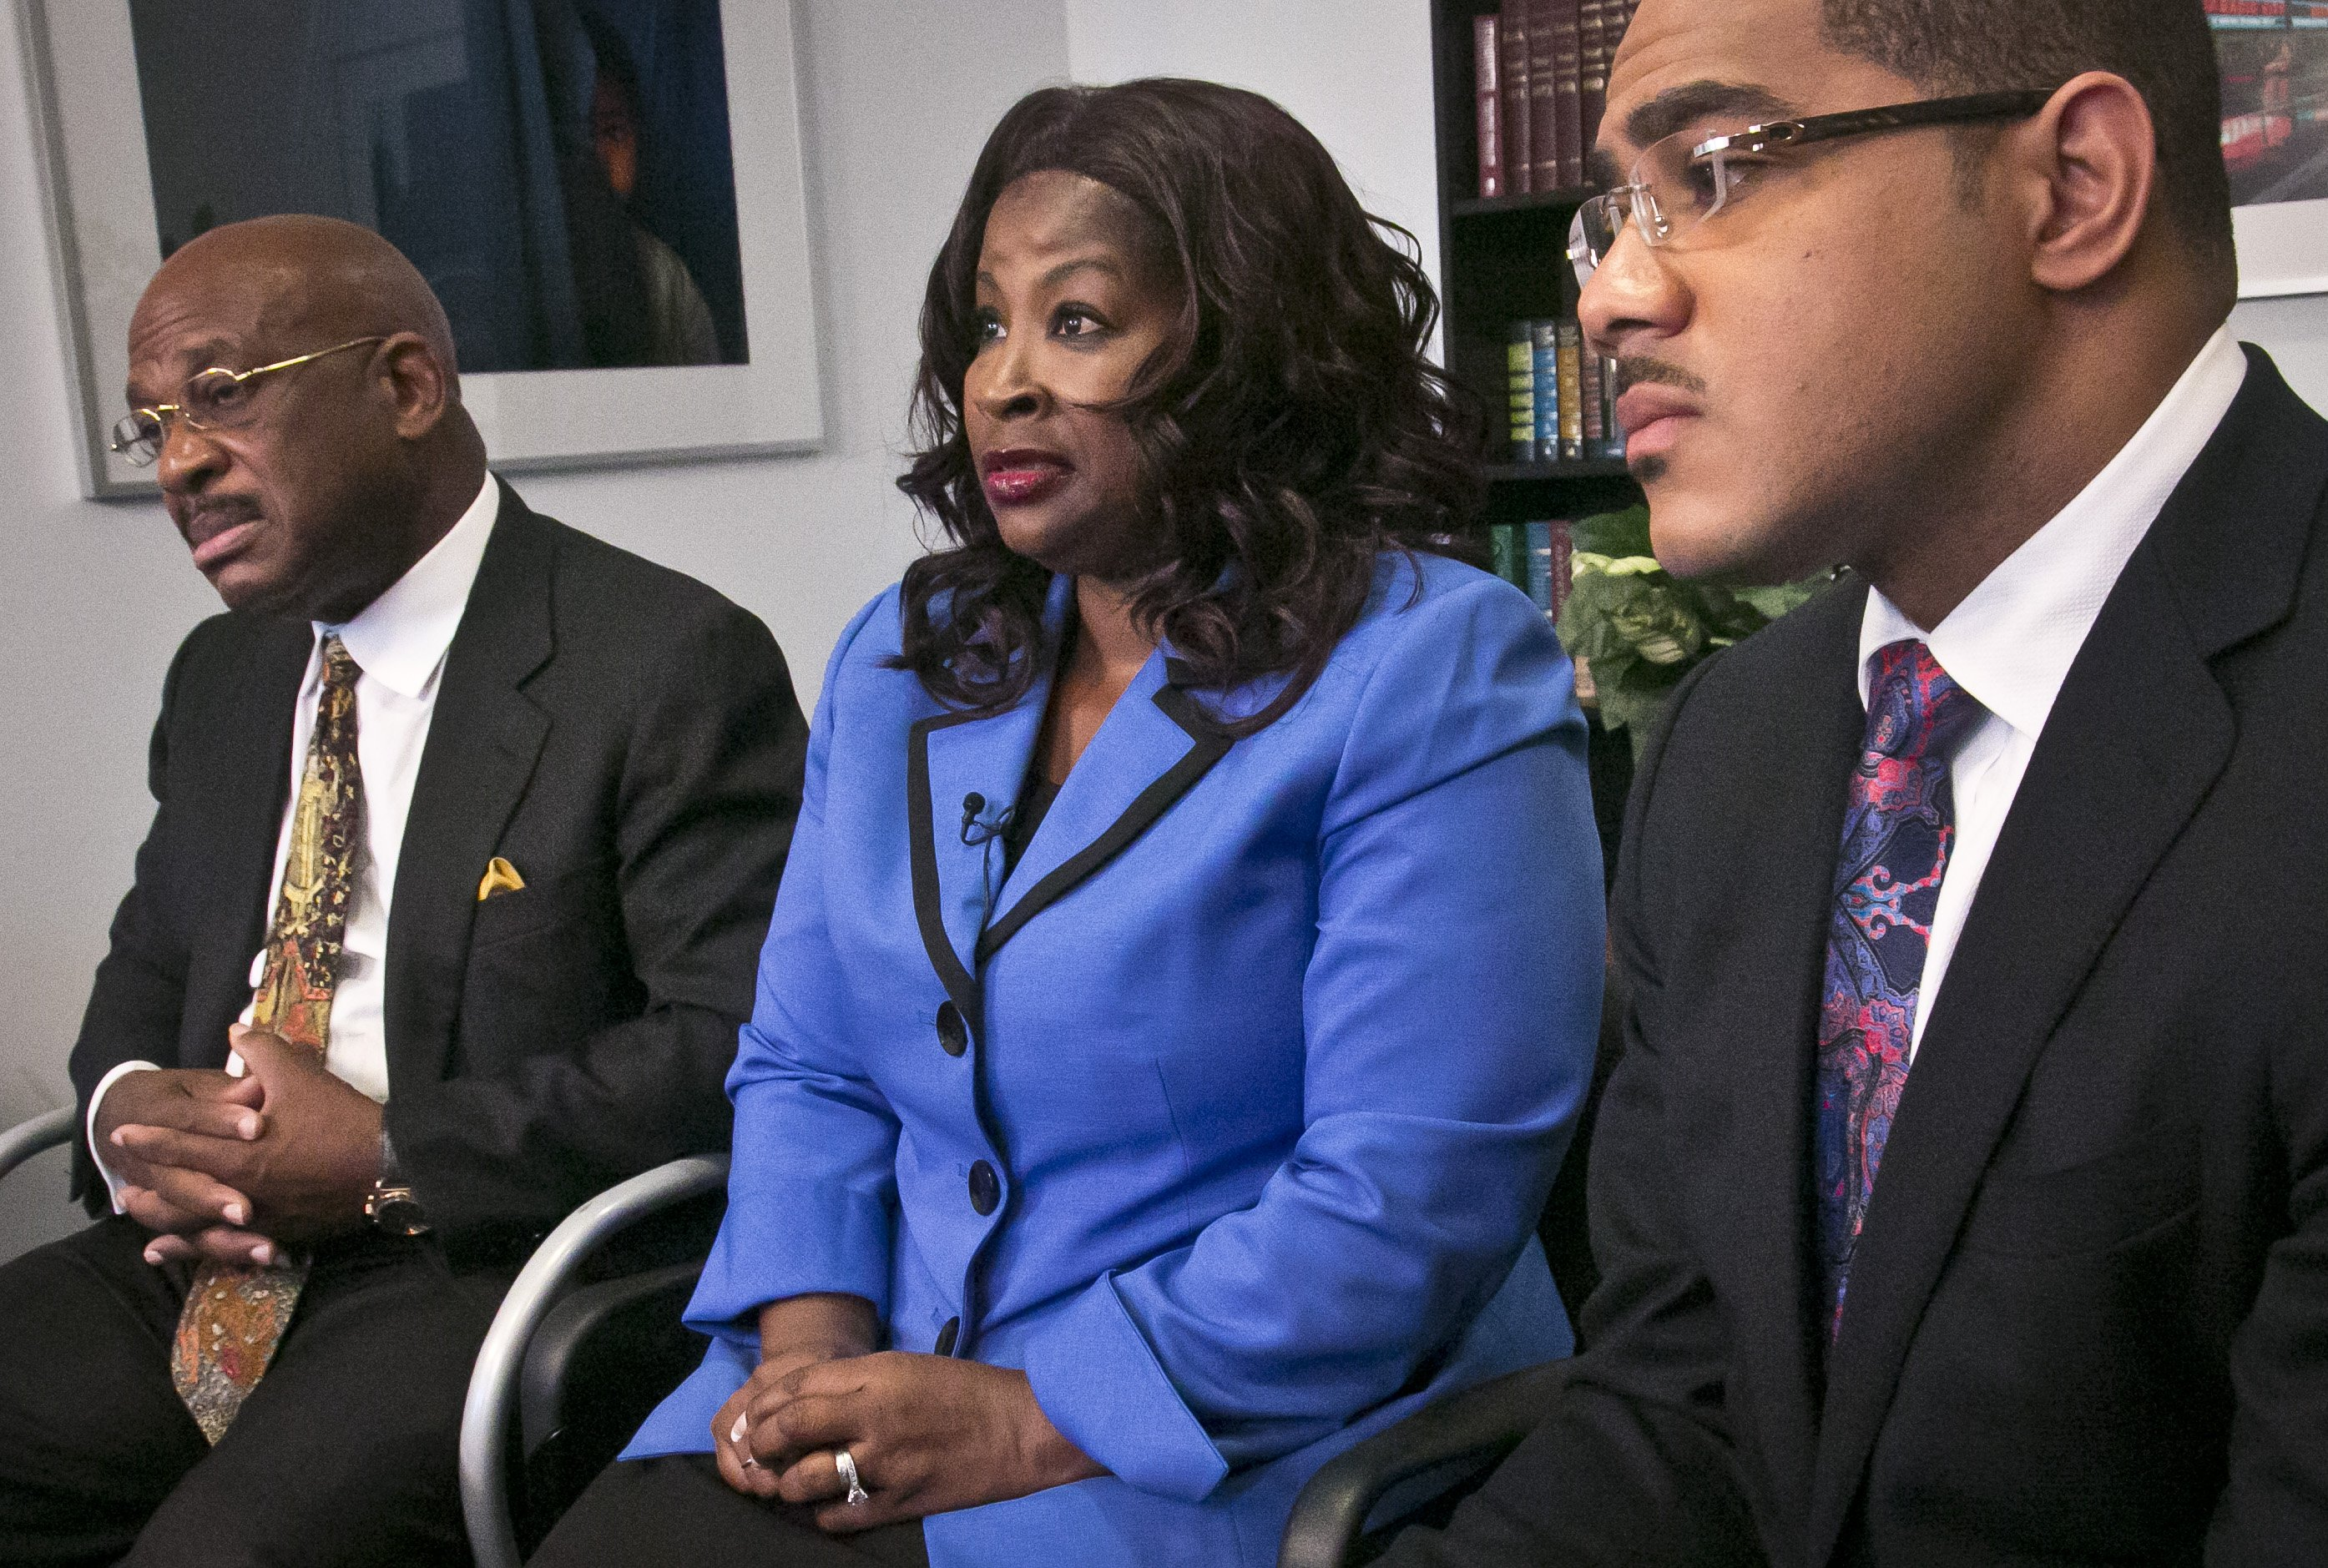 Cynthia Robinson with her attorneys Willie Gary (left) and Christopher Chestnut (right) as she speaks during an interview on July 21, 2014 in New York City.